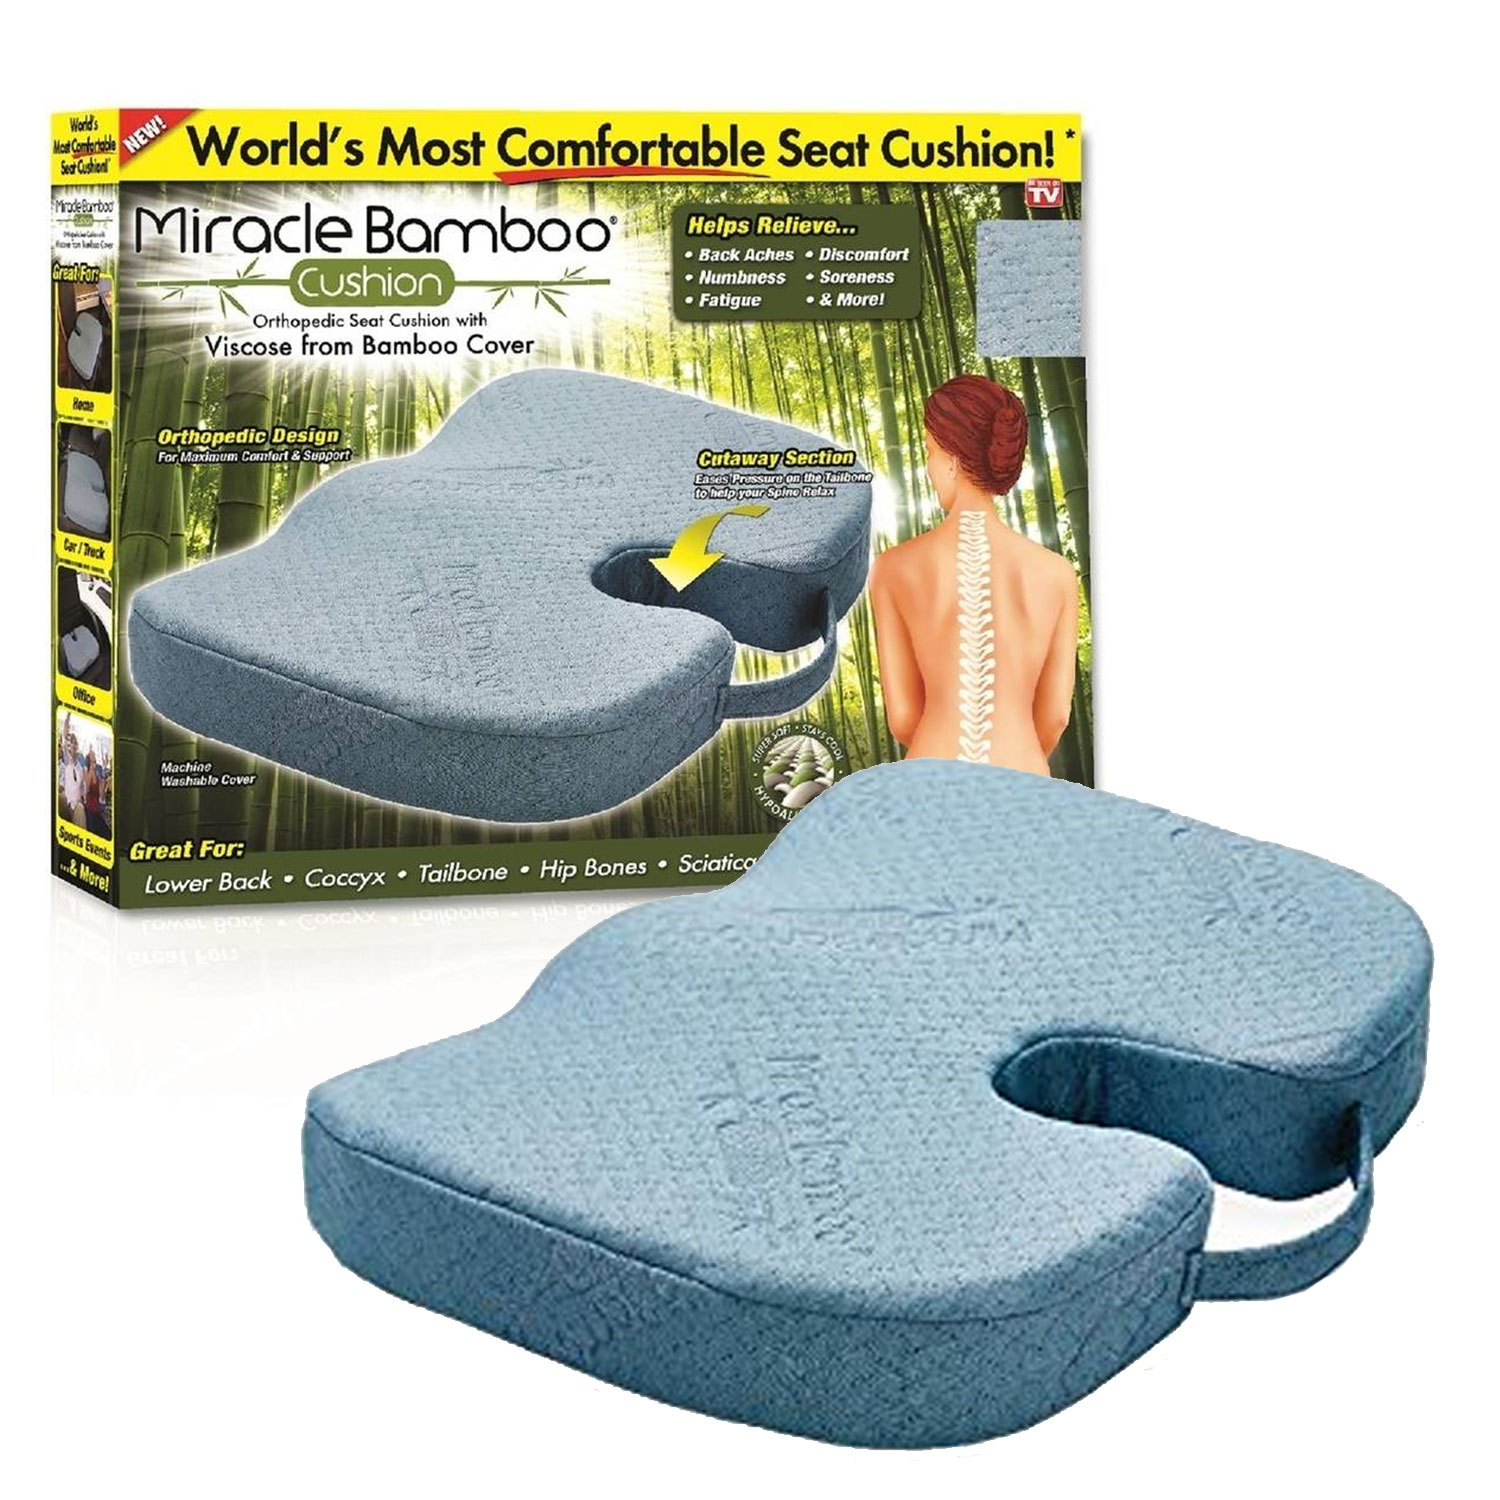 Miracle Bamboo Cushion Orthopedic Seat Cushion